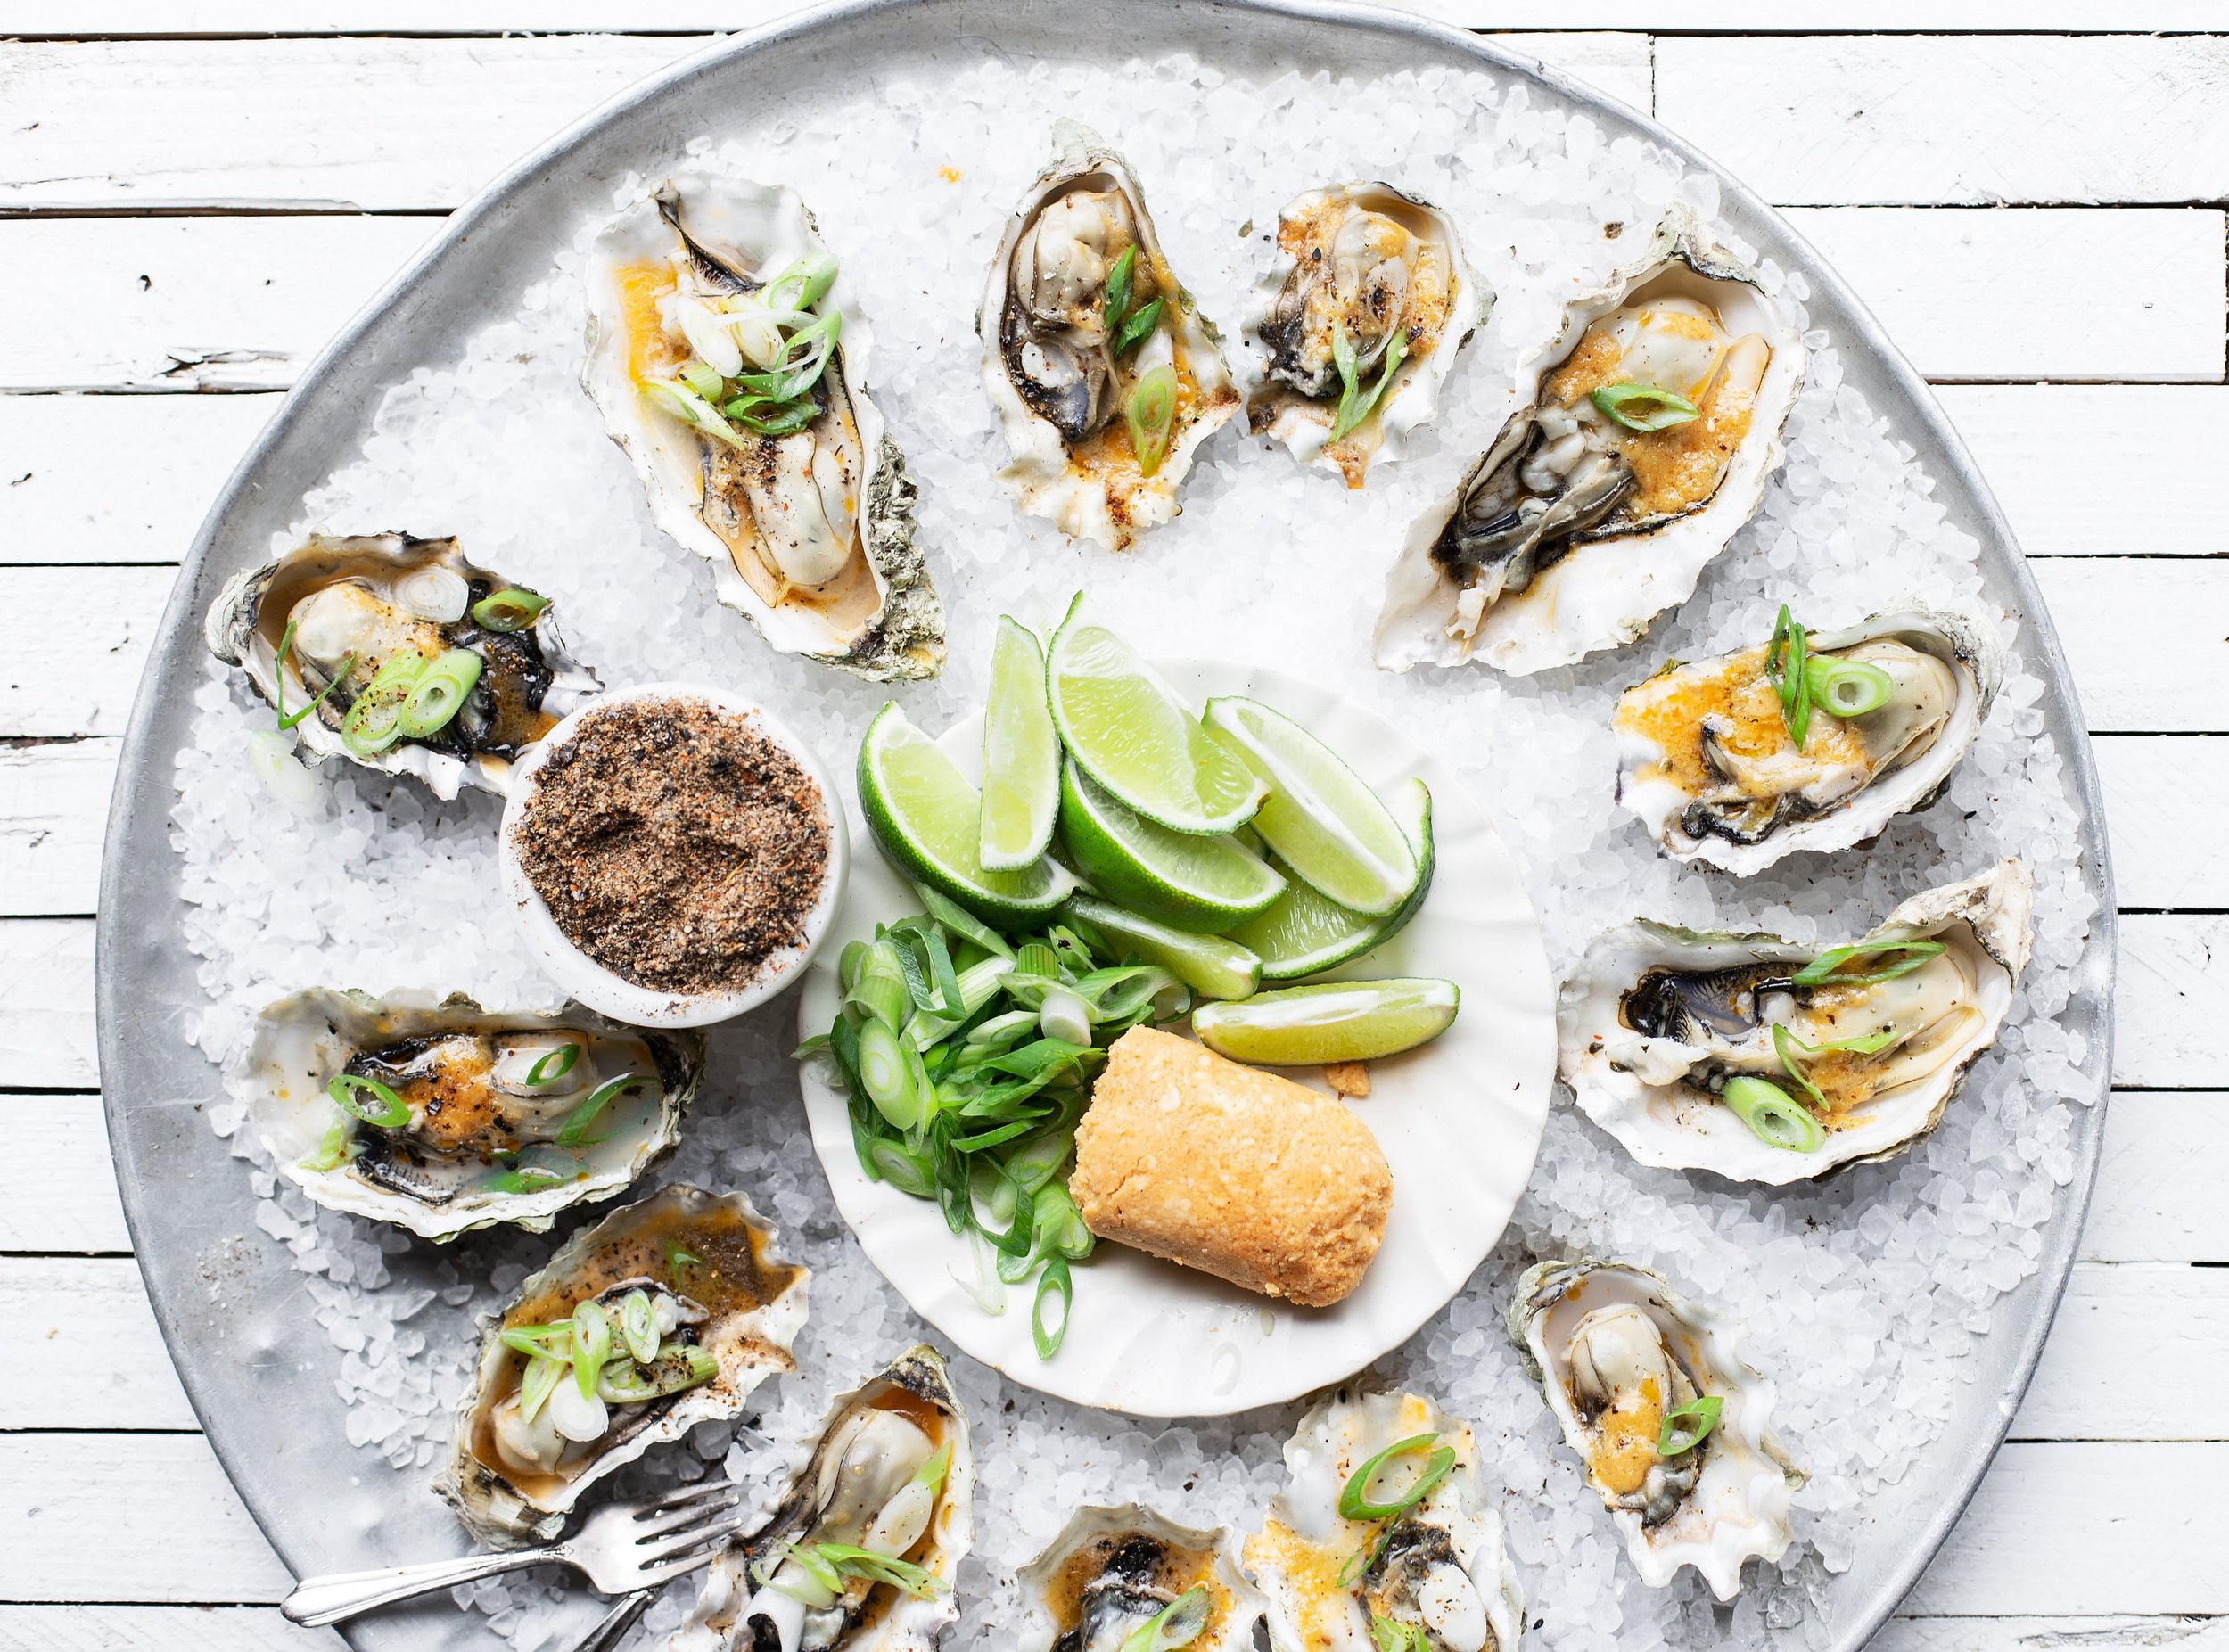 49f3bb3e-71dd-4b13-aeba-77ac58ad814d-Smoked+Oysters+with+Spicy+Miso+Butter12.jpg